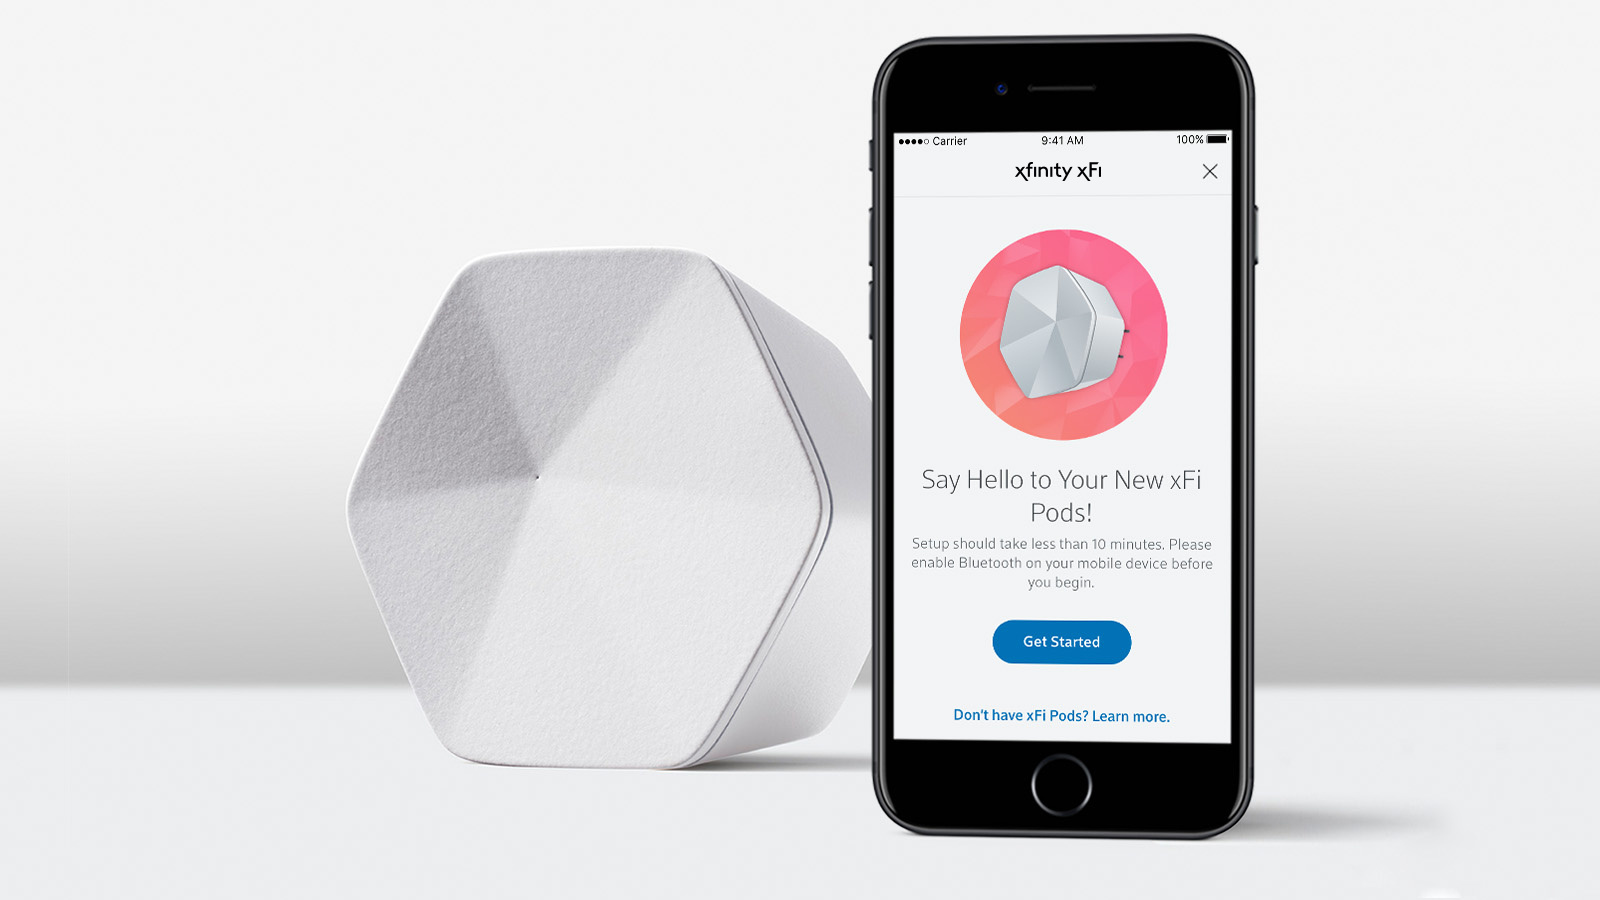 Comcast Bringing xFi Pods into Xfinity Homes to Form Mesh Network